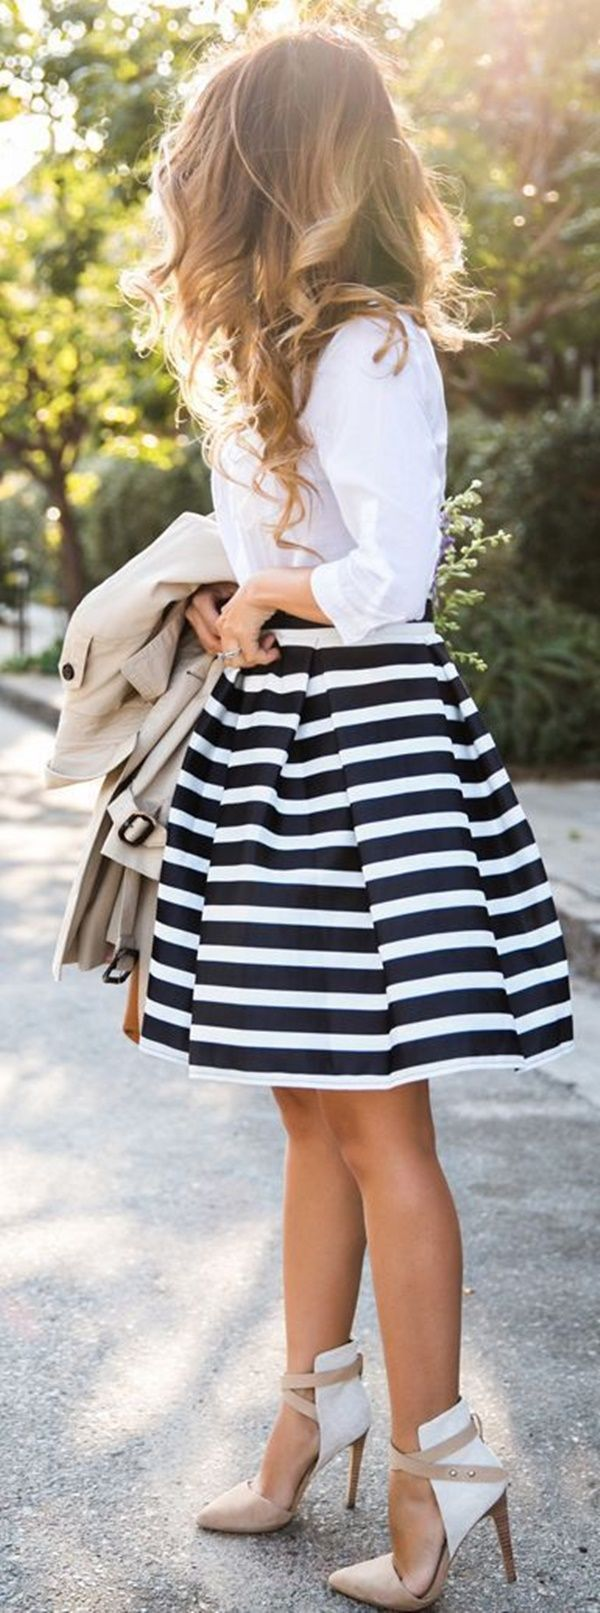 ♥️ SPRING will not Complete without Stripped Outfits ♥️ 45 Charming Spring Work Outfits To Wear To Office